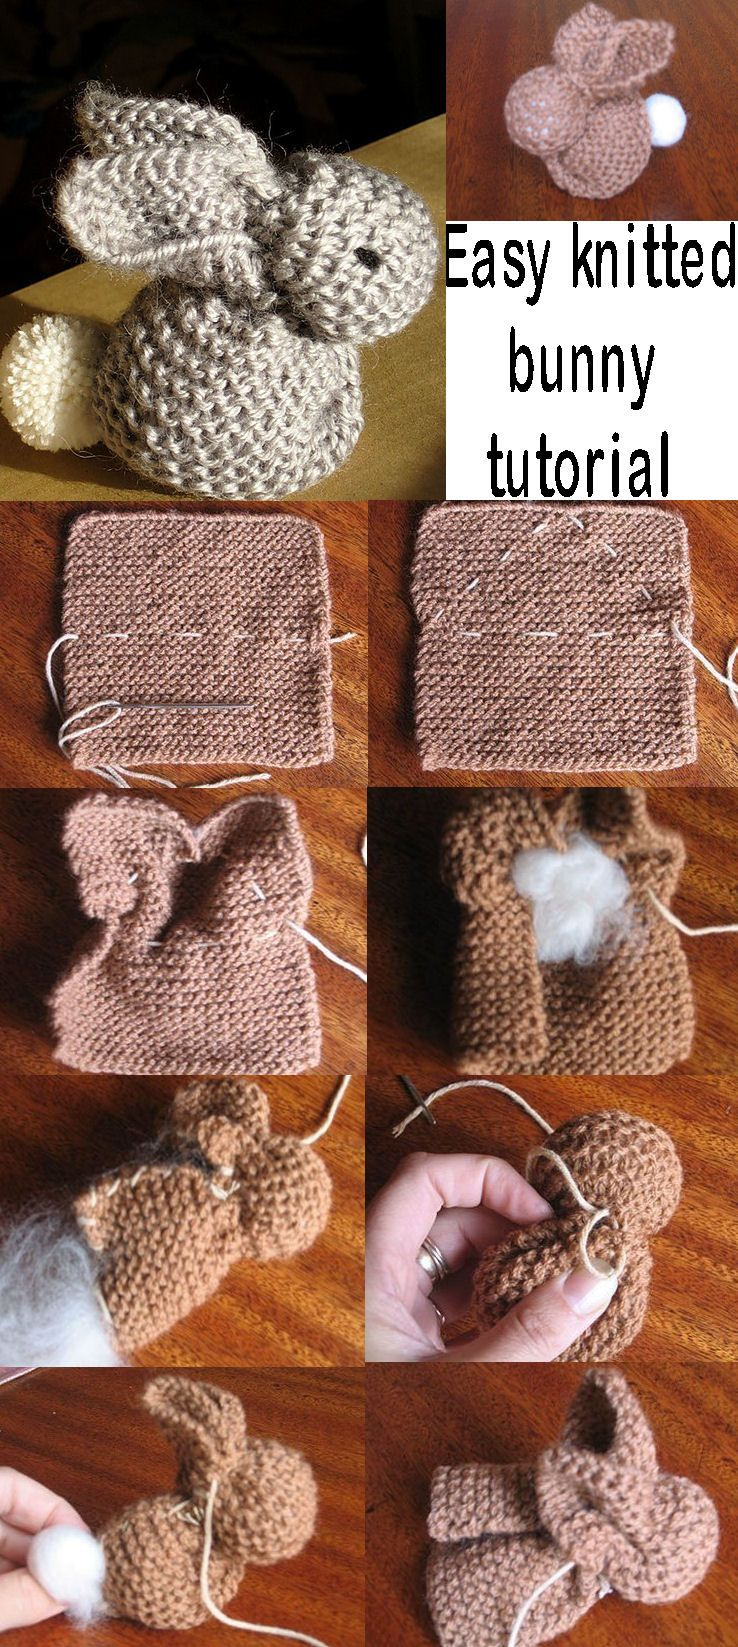 Step-by-step master class will teach how to crochet a knitted crown for a girl